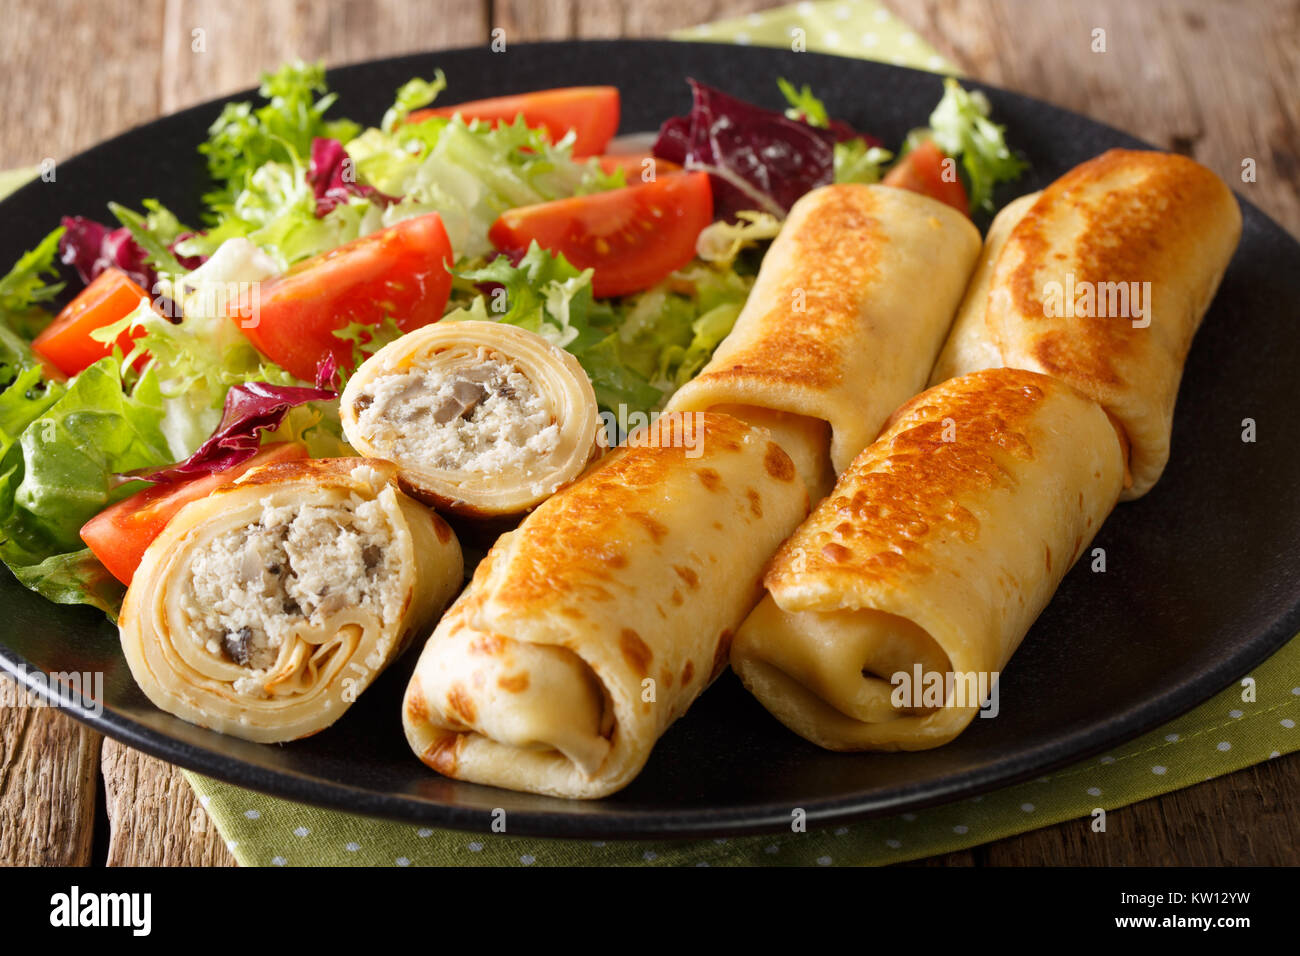 crepes rolls with chicken, cheese and mushrooms close-up and salad of fresh vegetables on a plate. horizontal - Stock Image